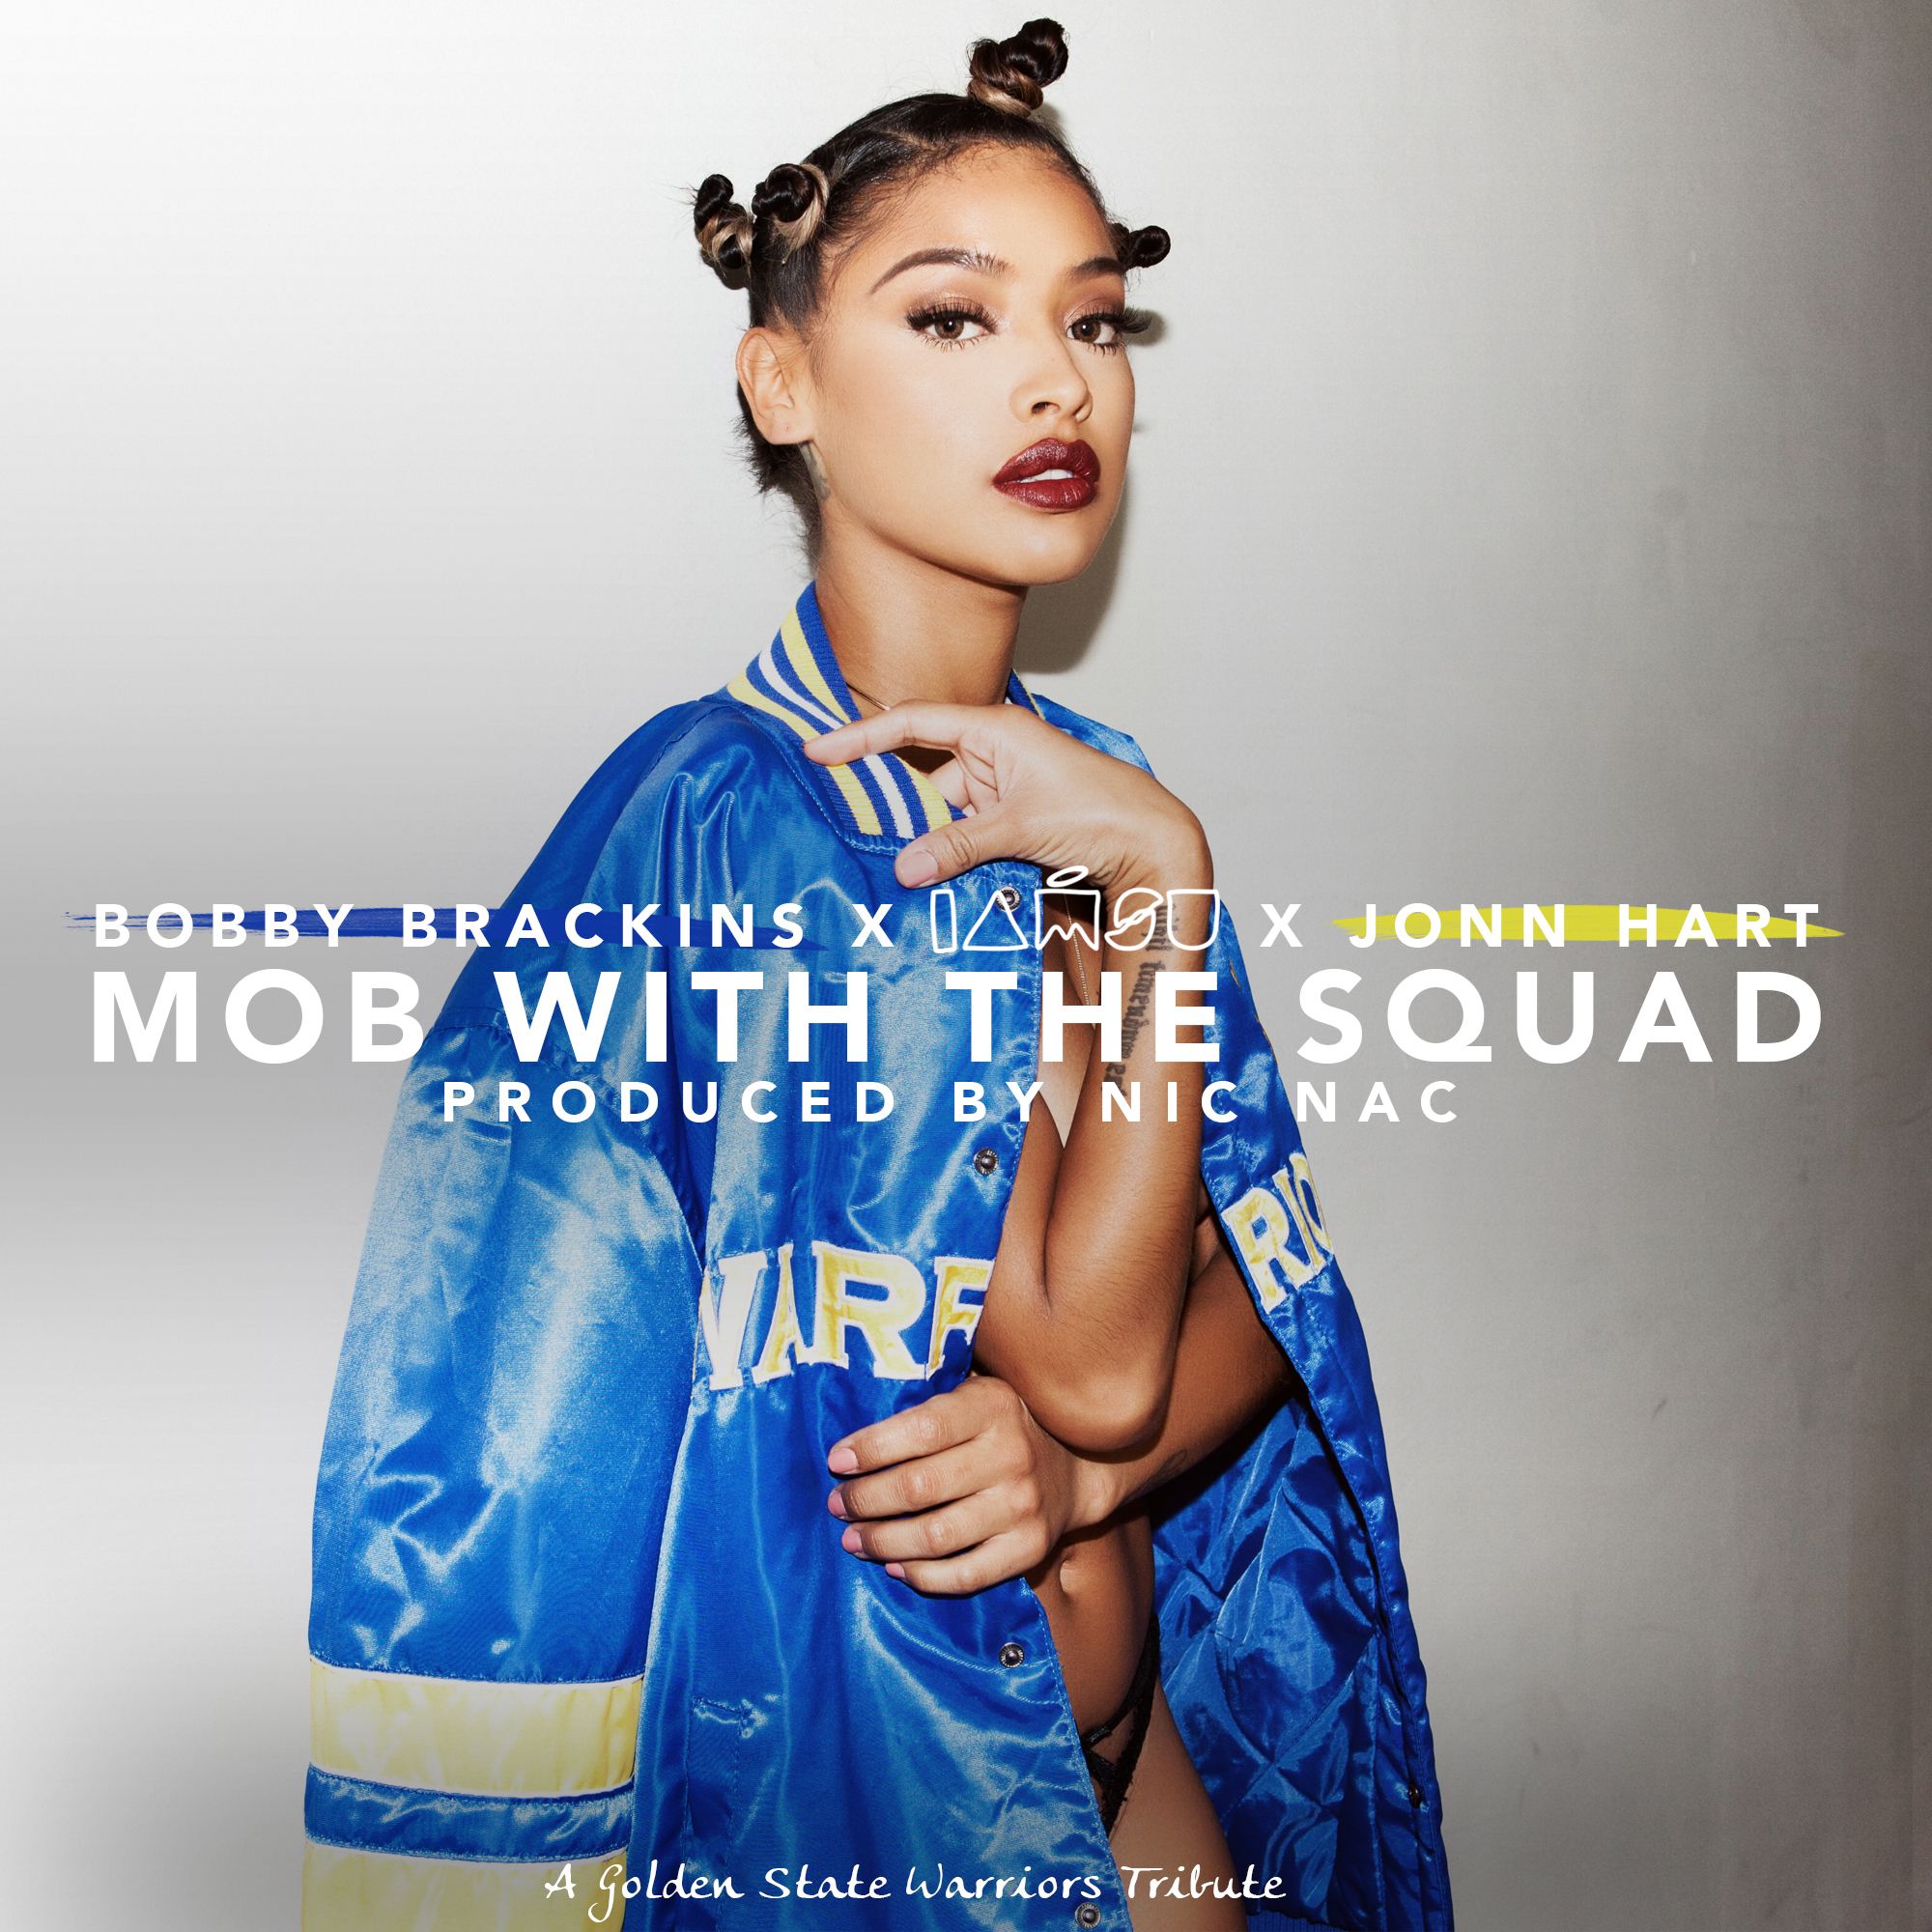 Bobby Brackins x IAMSU! x Jonn Hart x Nic Nac - Mob With The Squad - Cover Artwork